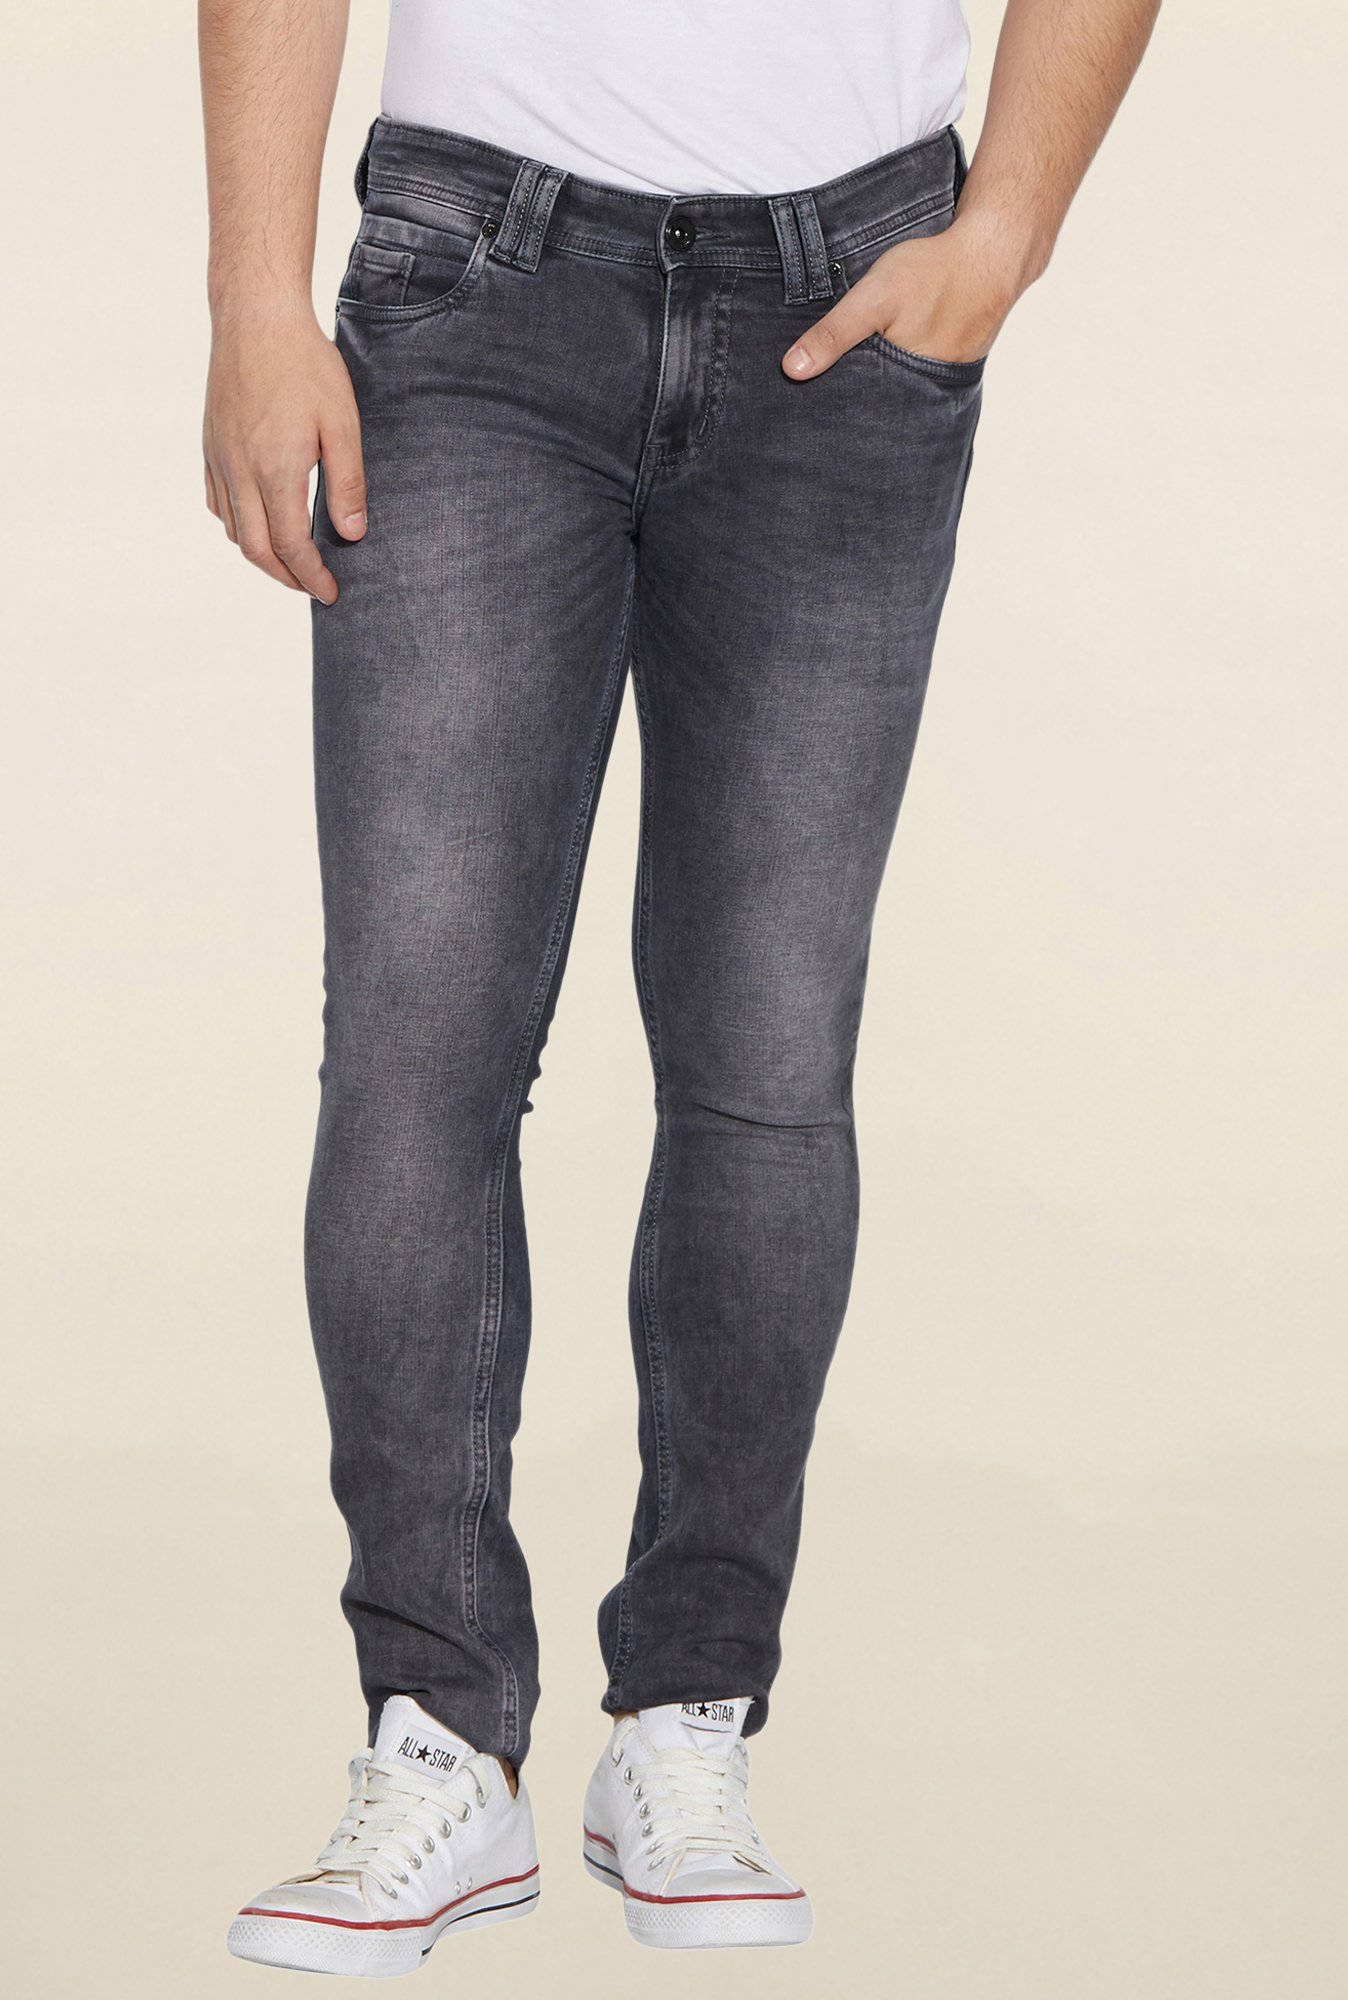 Globus Grey Lightly Washed Jeans